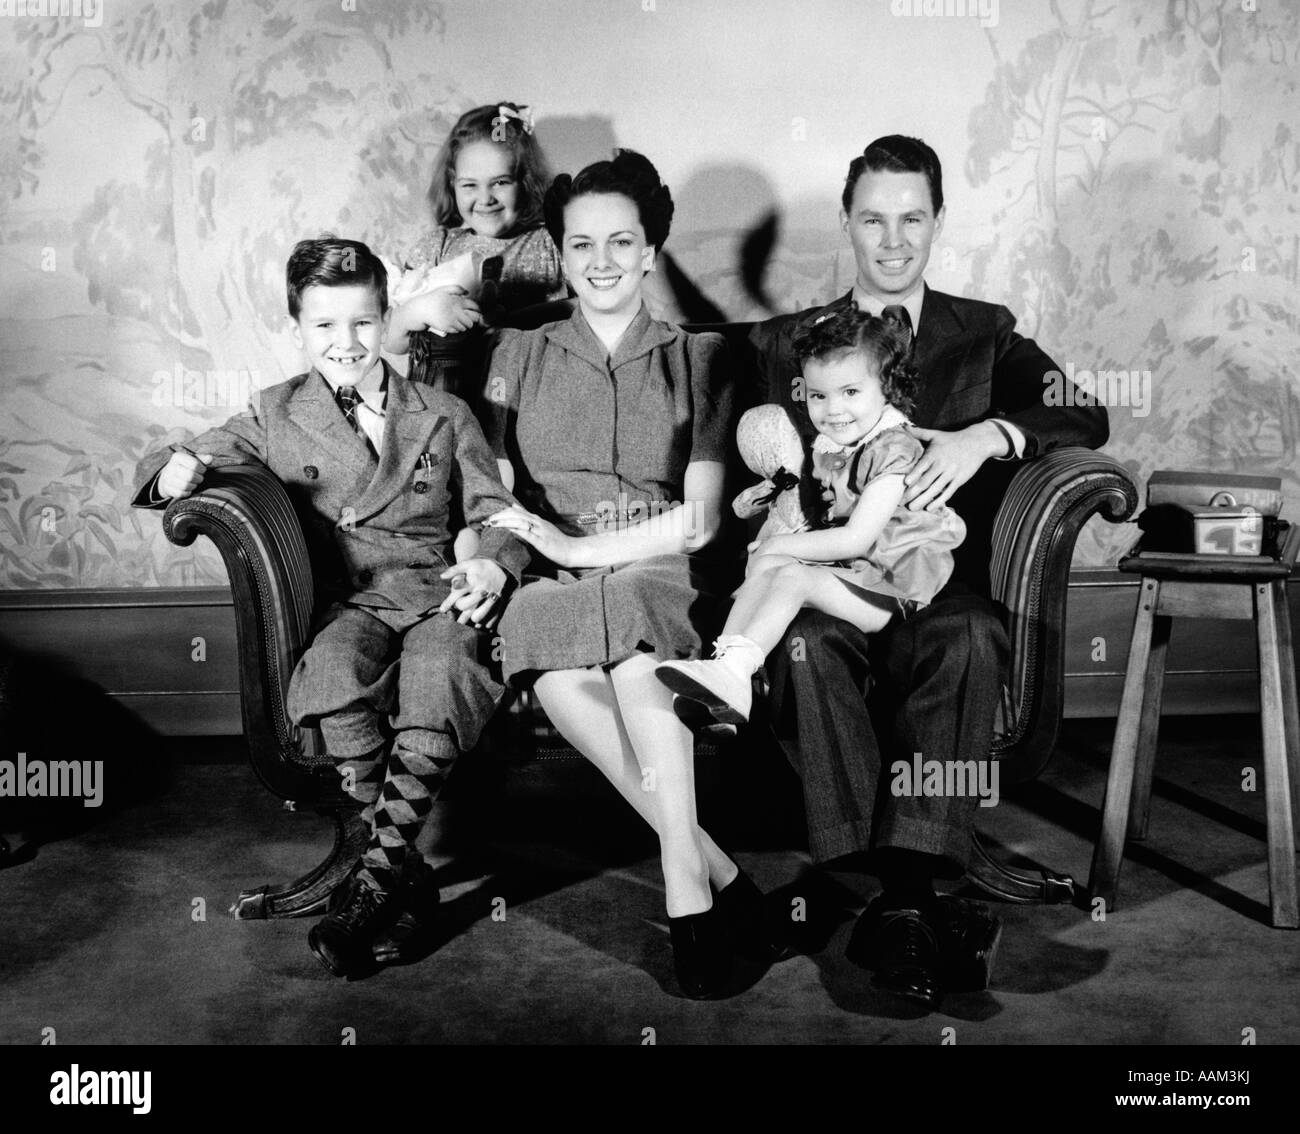 1940s Family Of 5 Portrait Sitting On Couch Facing Camera Smiling